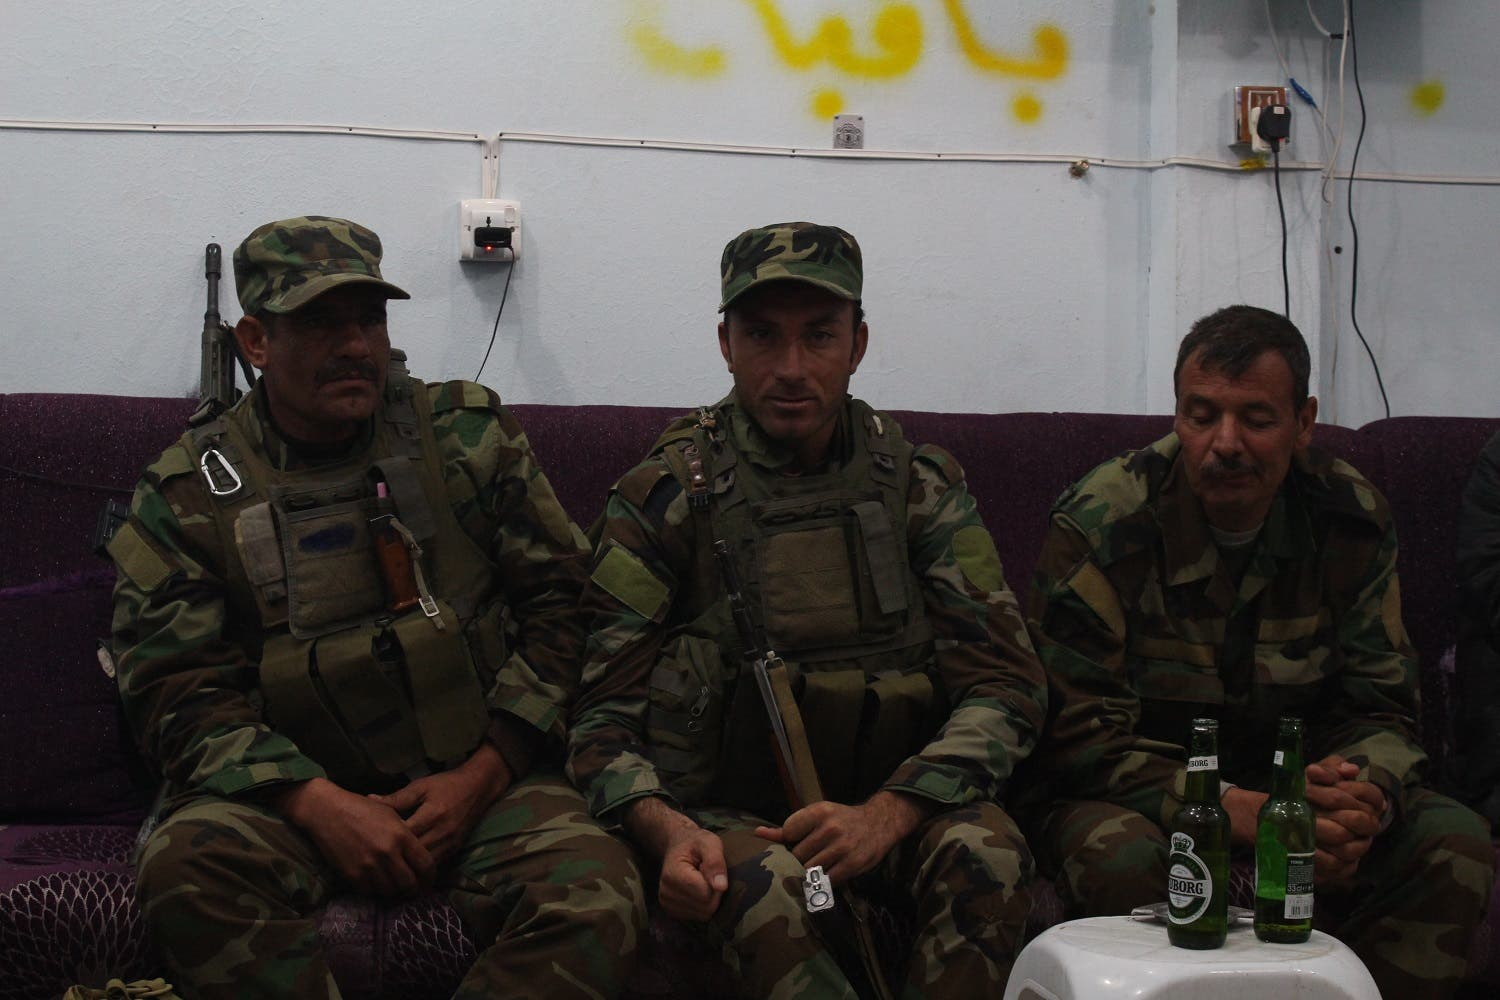 Yazidi fighters relax after battle. For them, the war goes on. (Florian Neuho/Al Arabiya News)